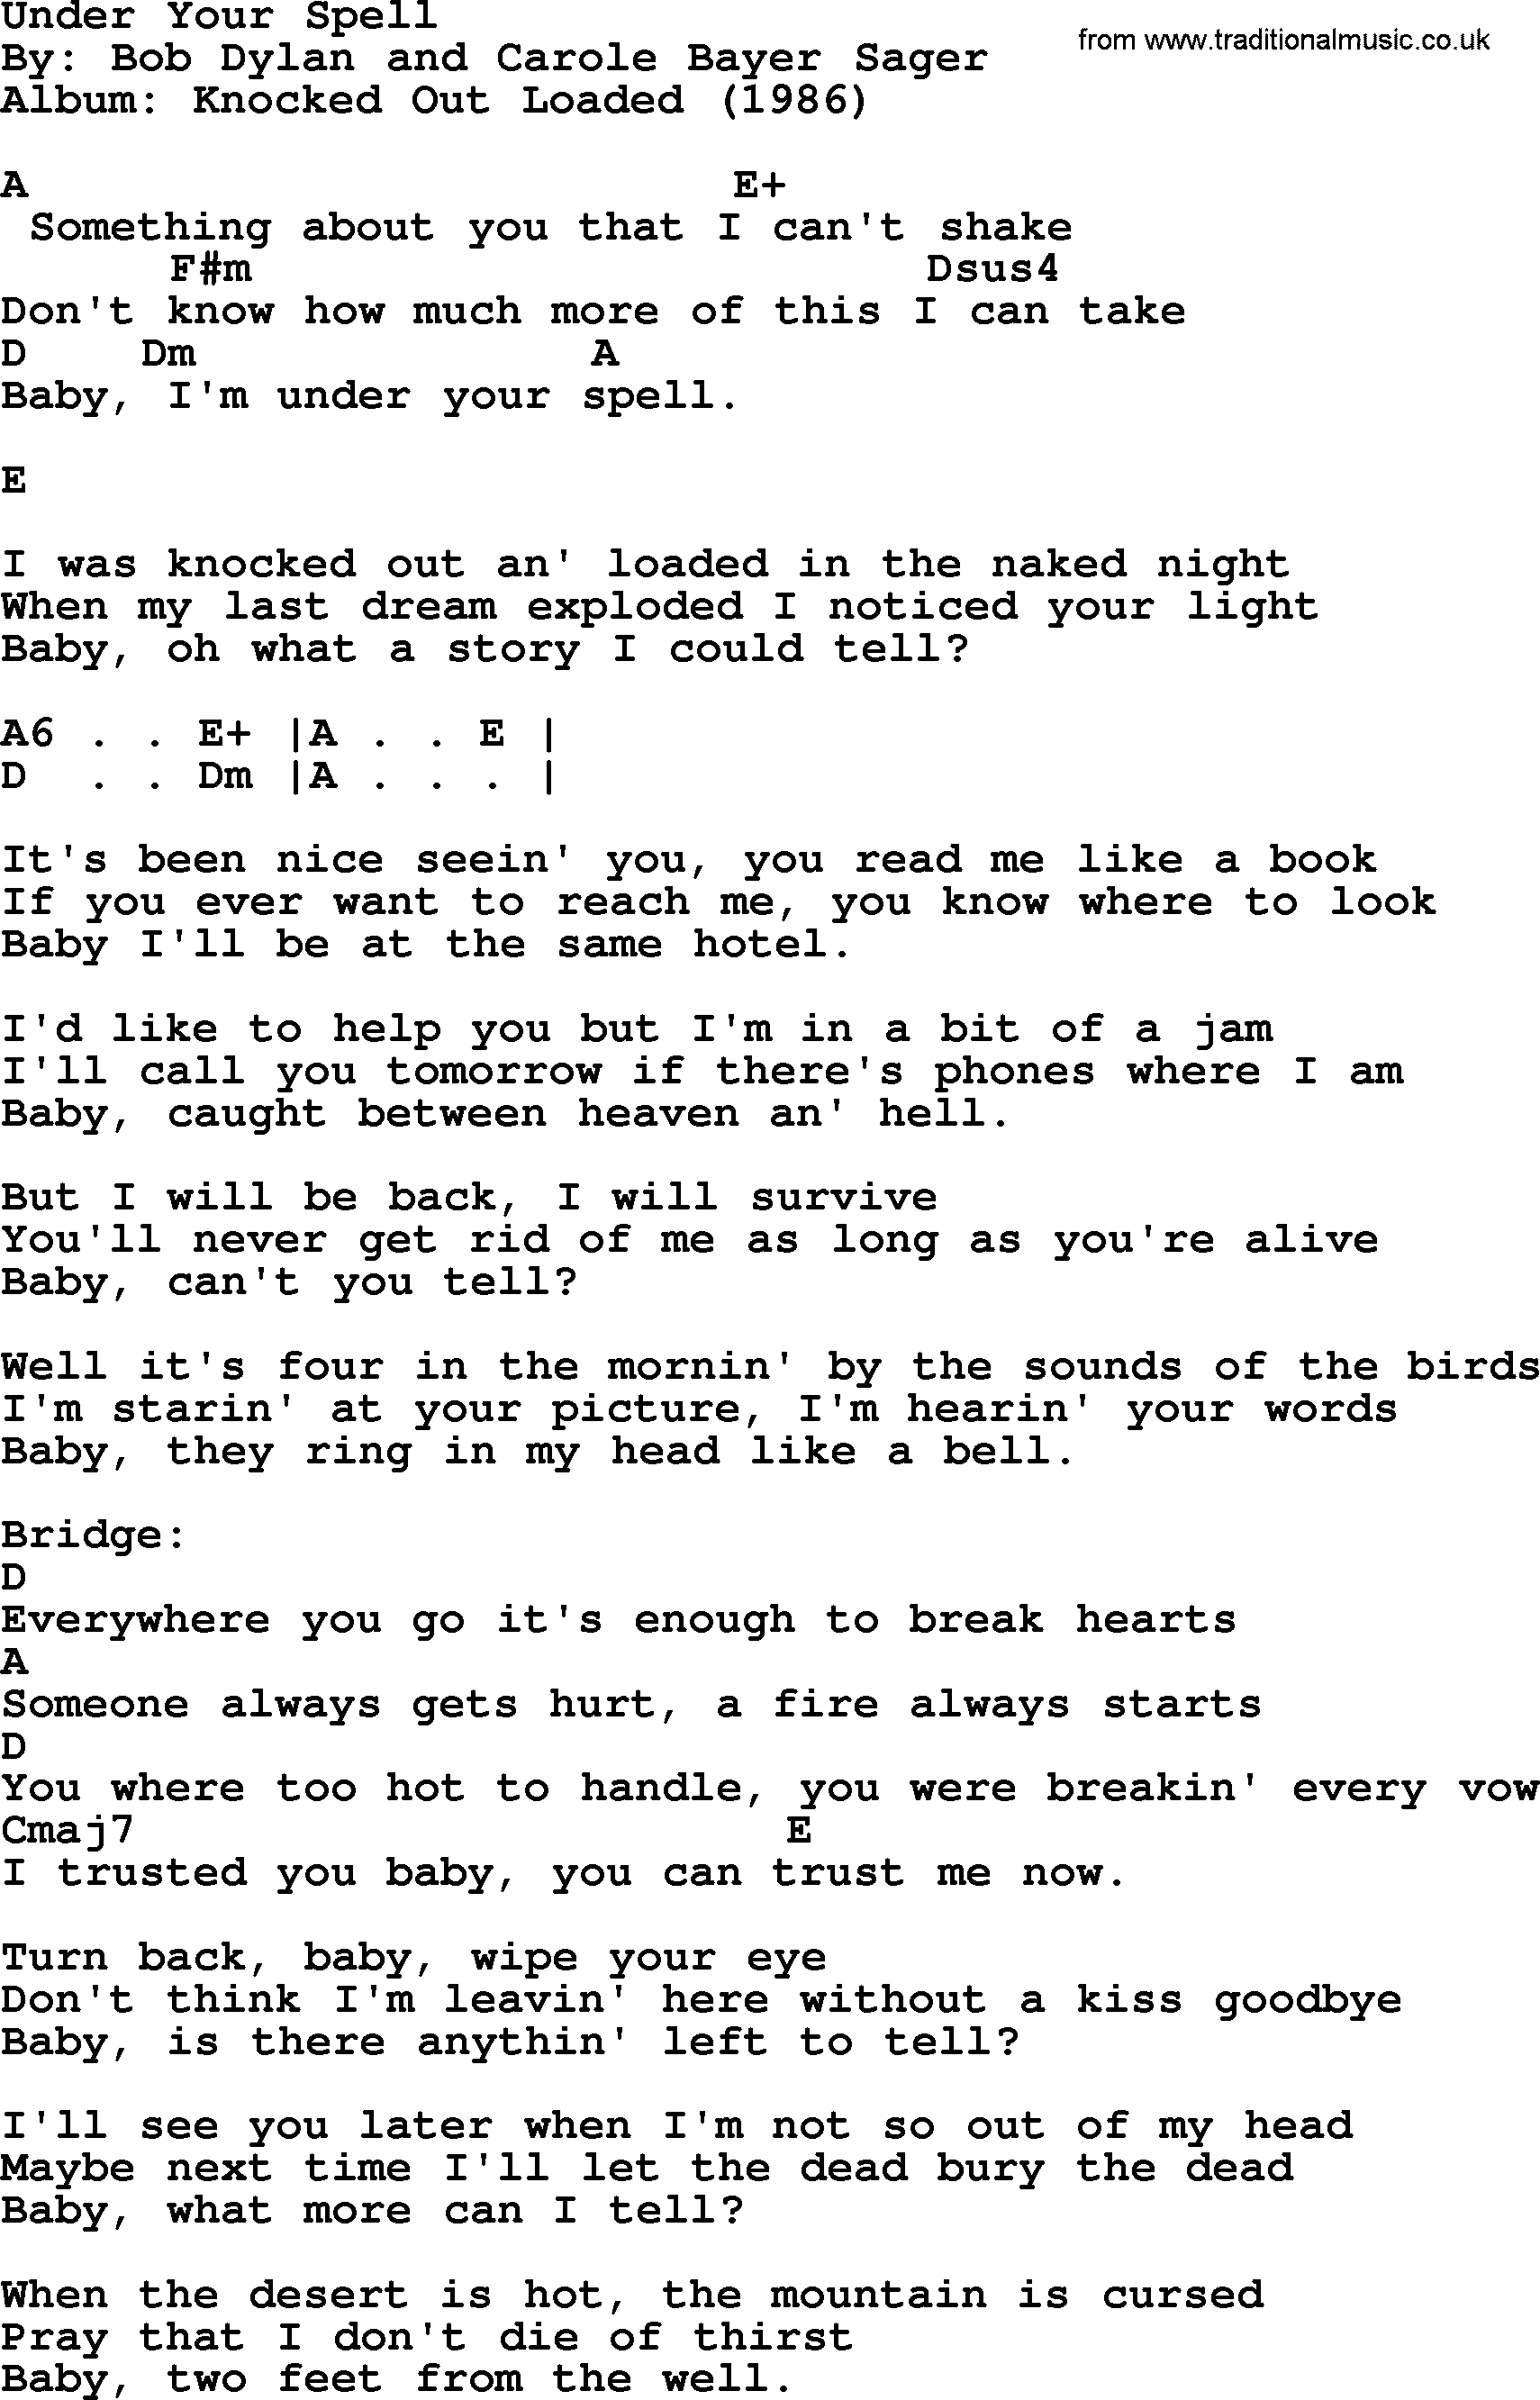 Under The Bridge Chords Bob Dylan Song Under Your Spell Lyrics And Chords